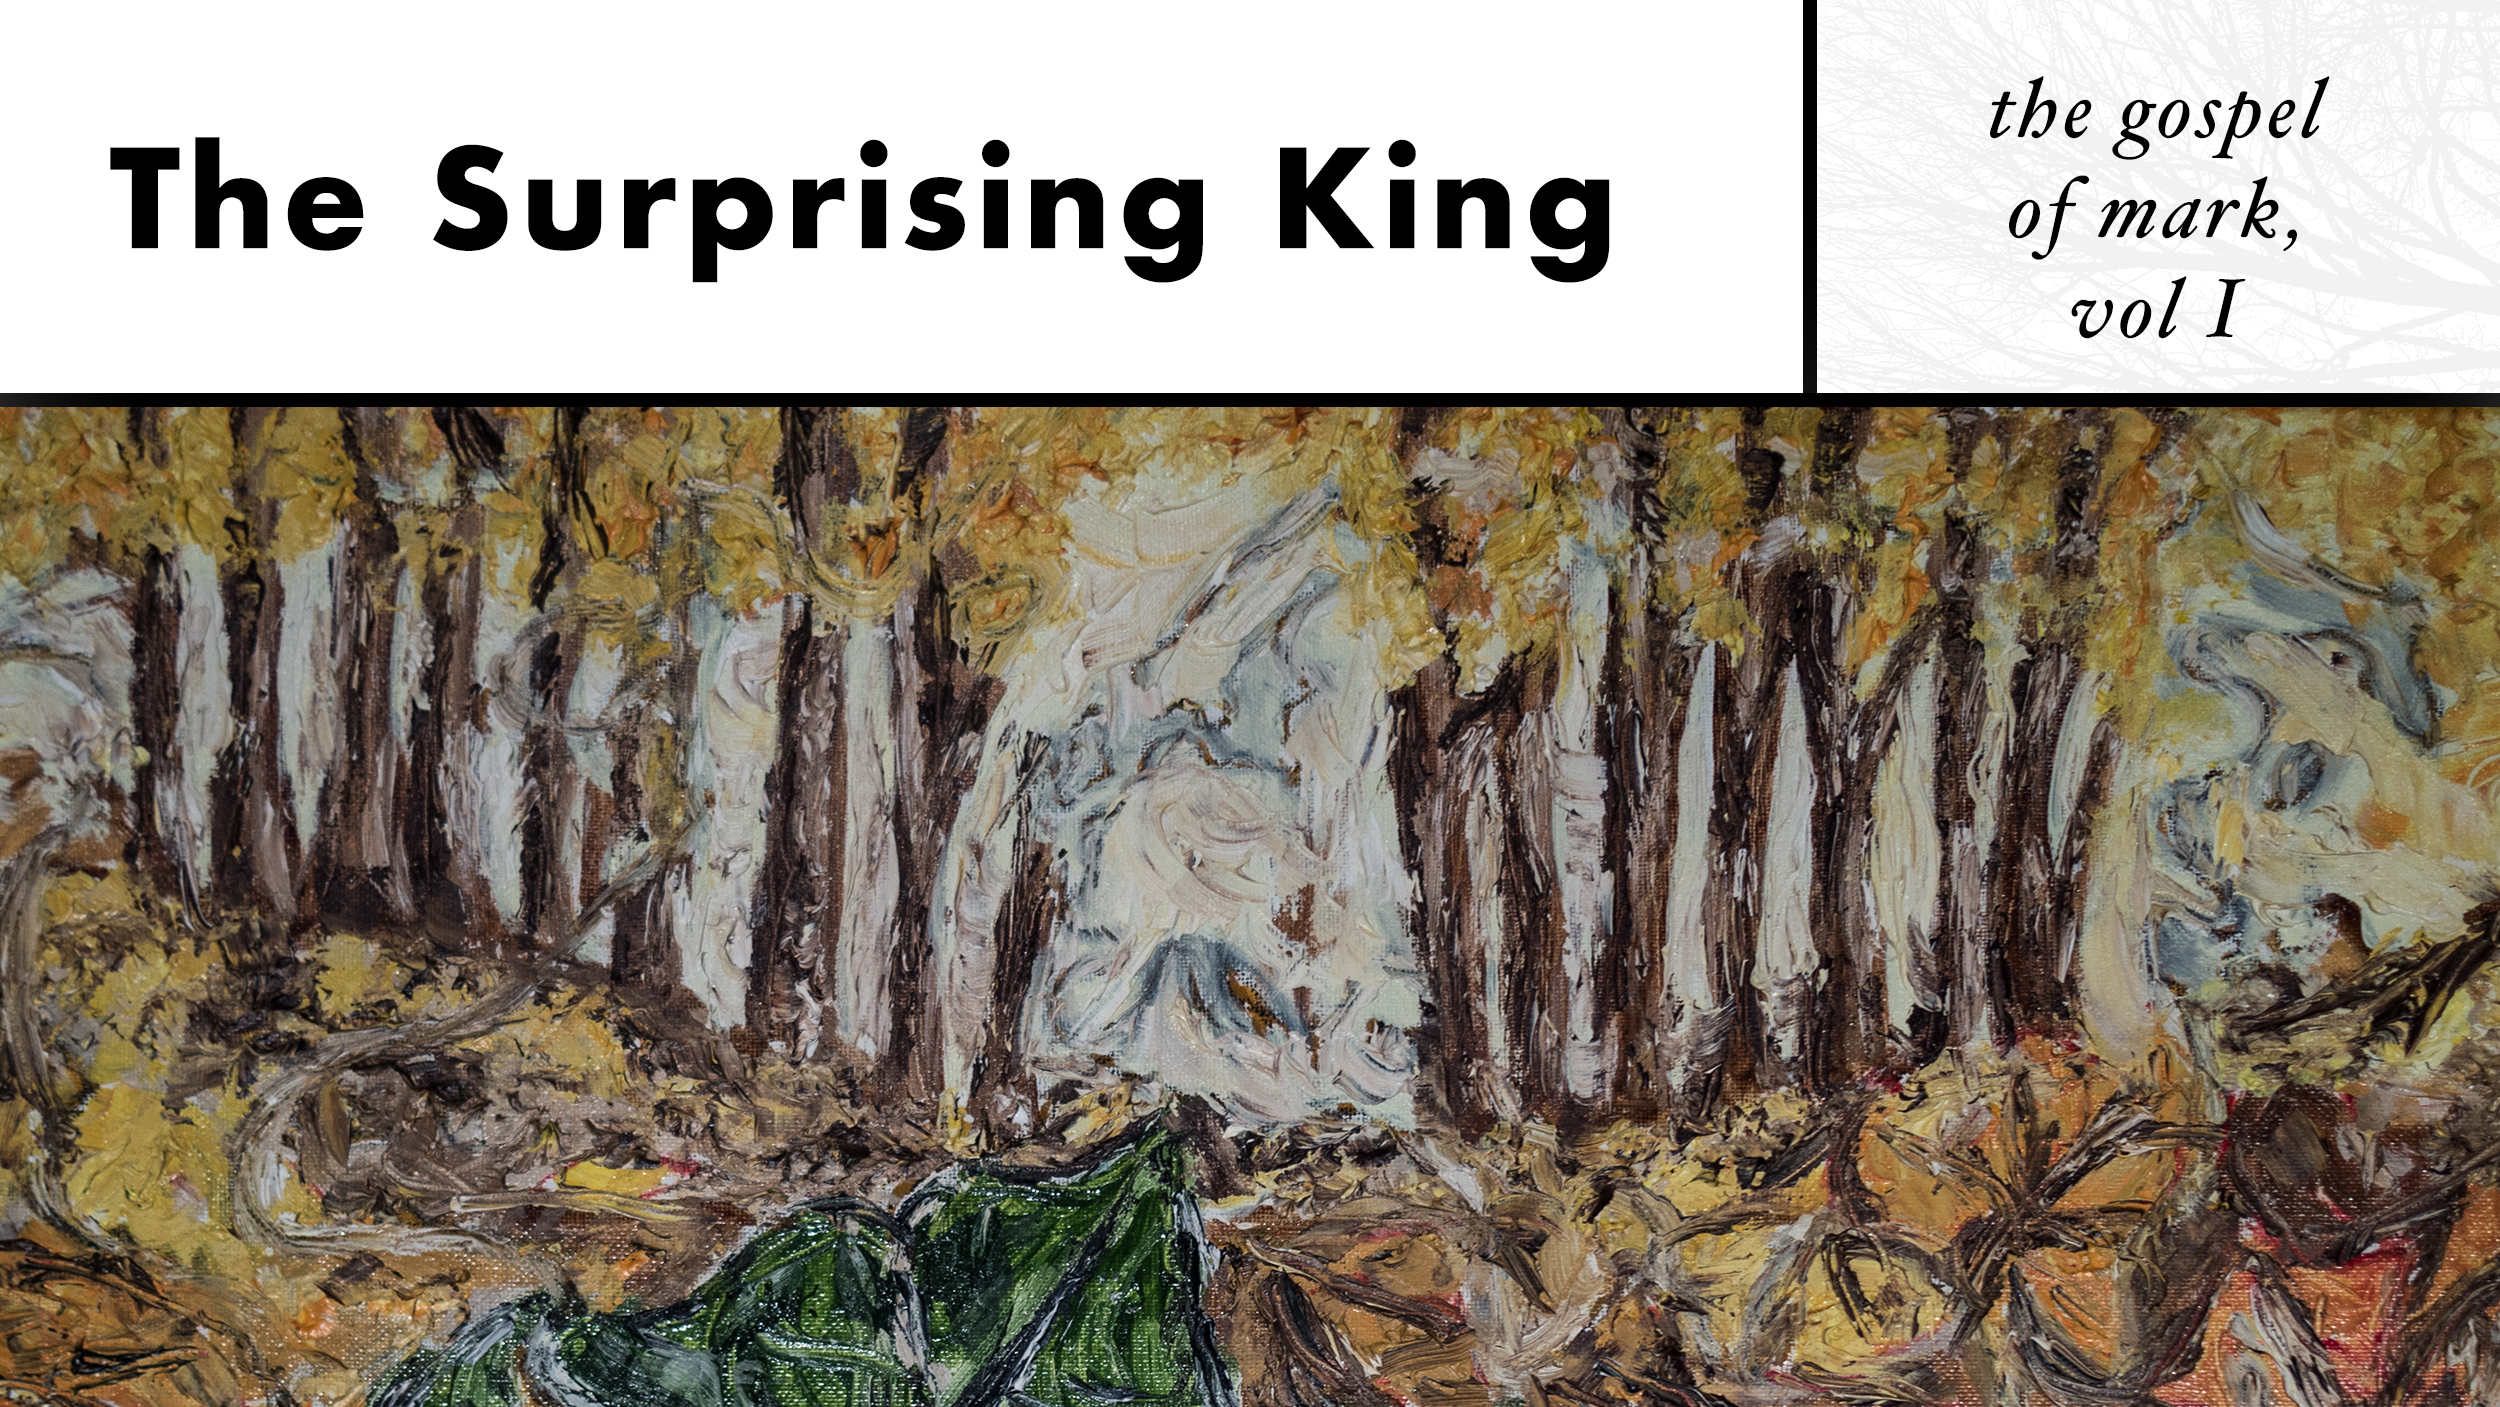 The first eight chapters of Mark's gospel is about how Jesus reveals Himself as the surprising King.